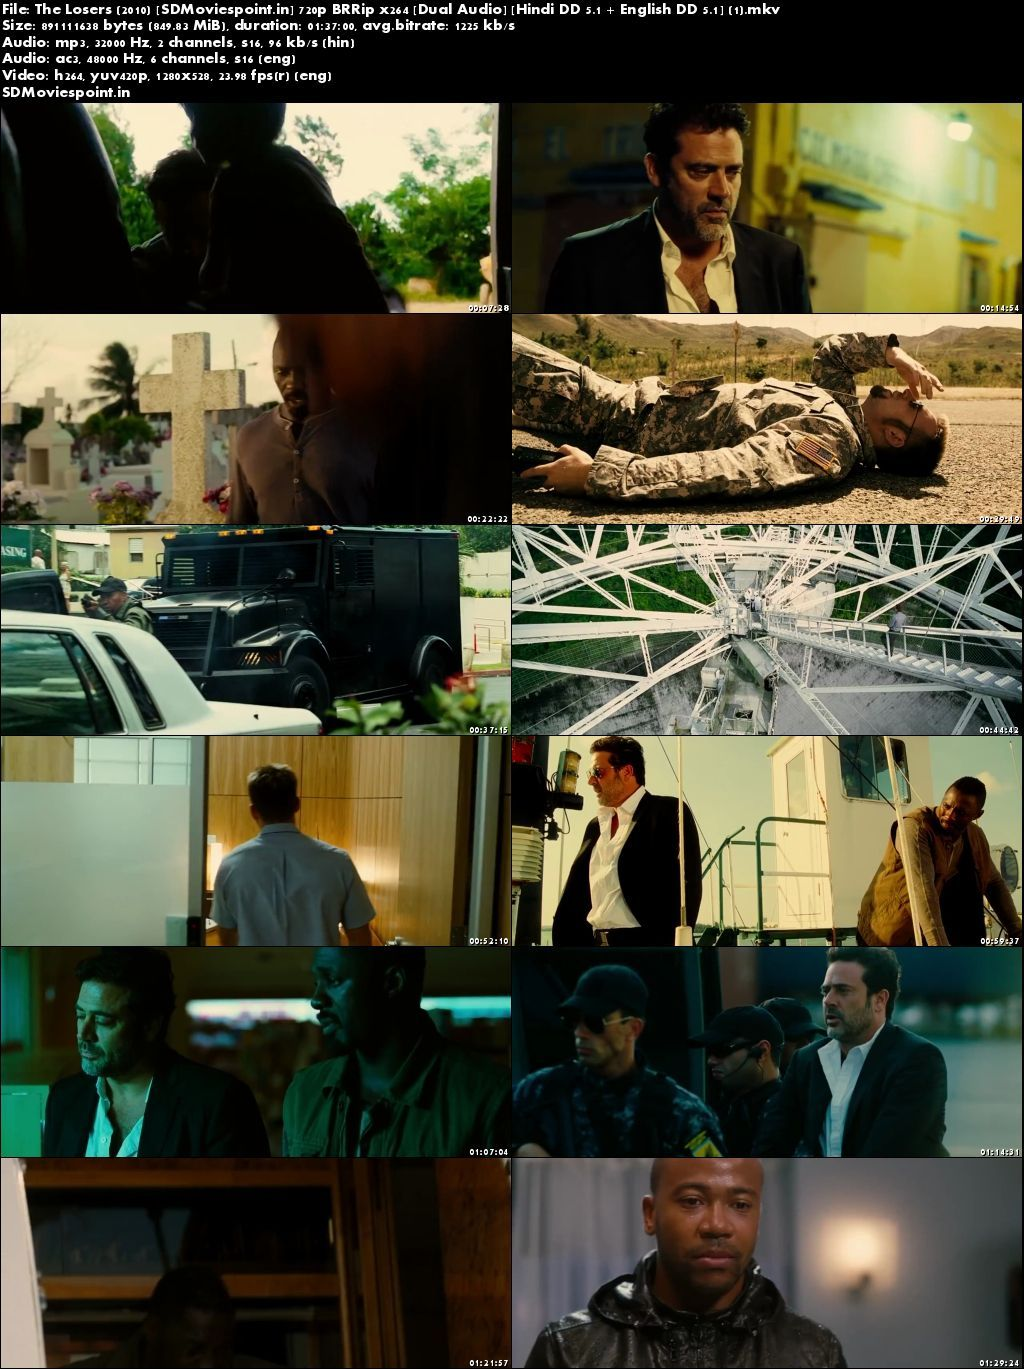 Screen Shots The Losers 2010 Full Movie Download Free In Dual Audio Hindi